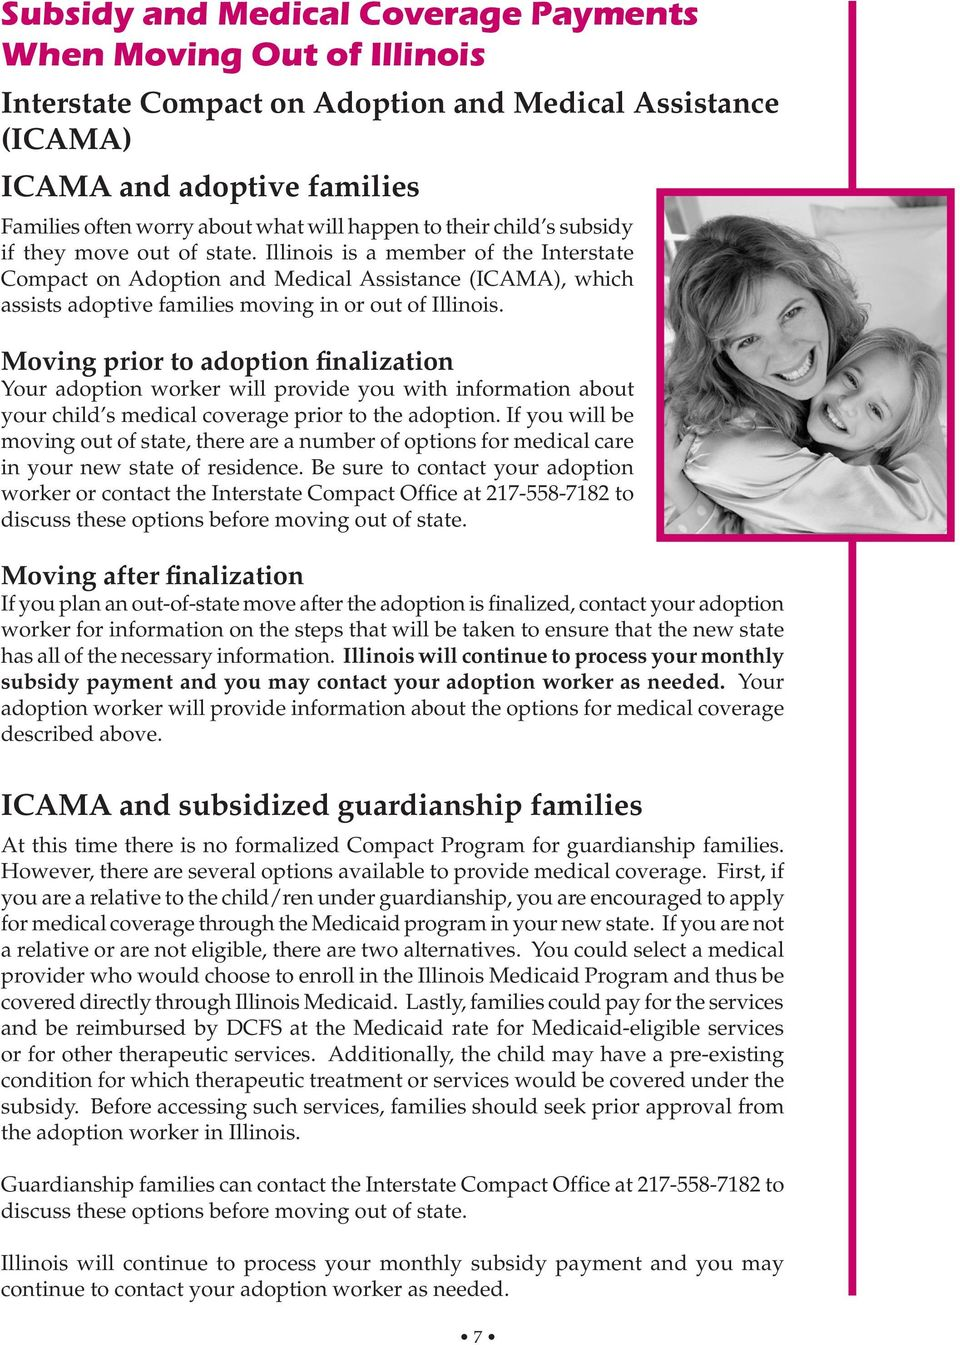 Illinois is a member of the Interstate Compact on Adoption and Medical Assistance (ICAMA), which assists adoptive families moving in or out of Illinois.